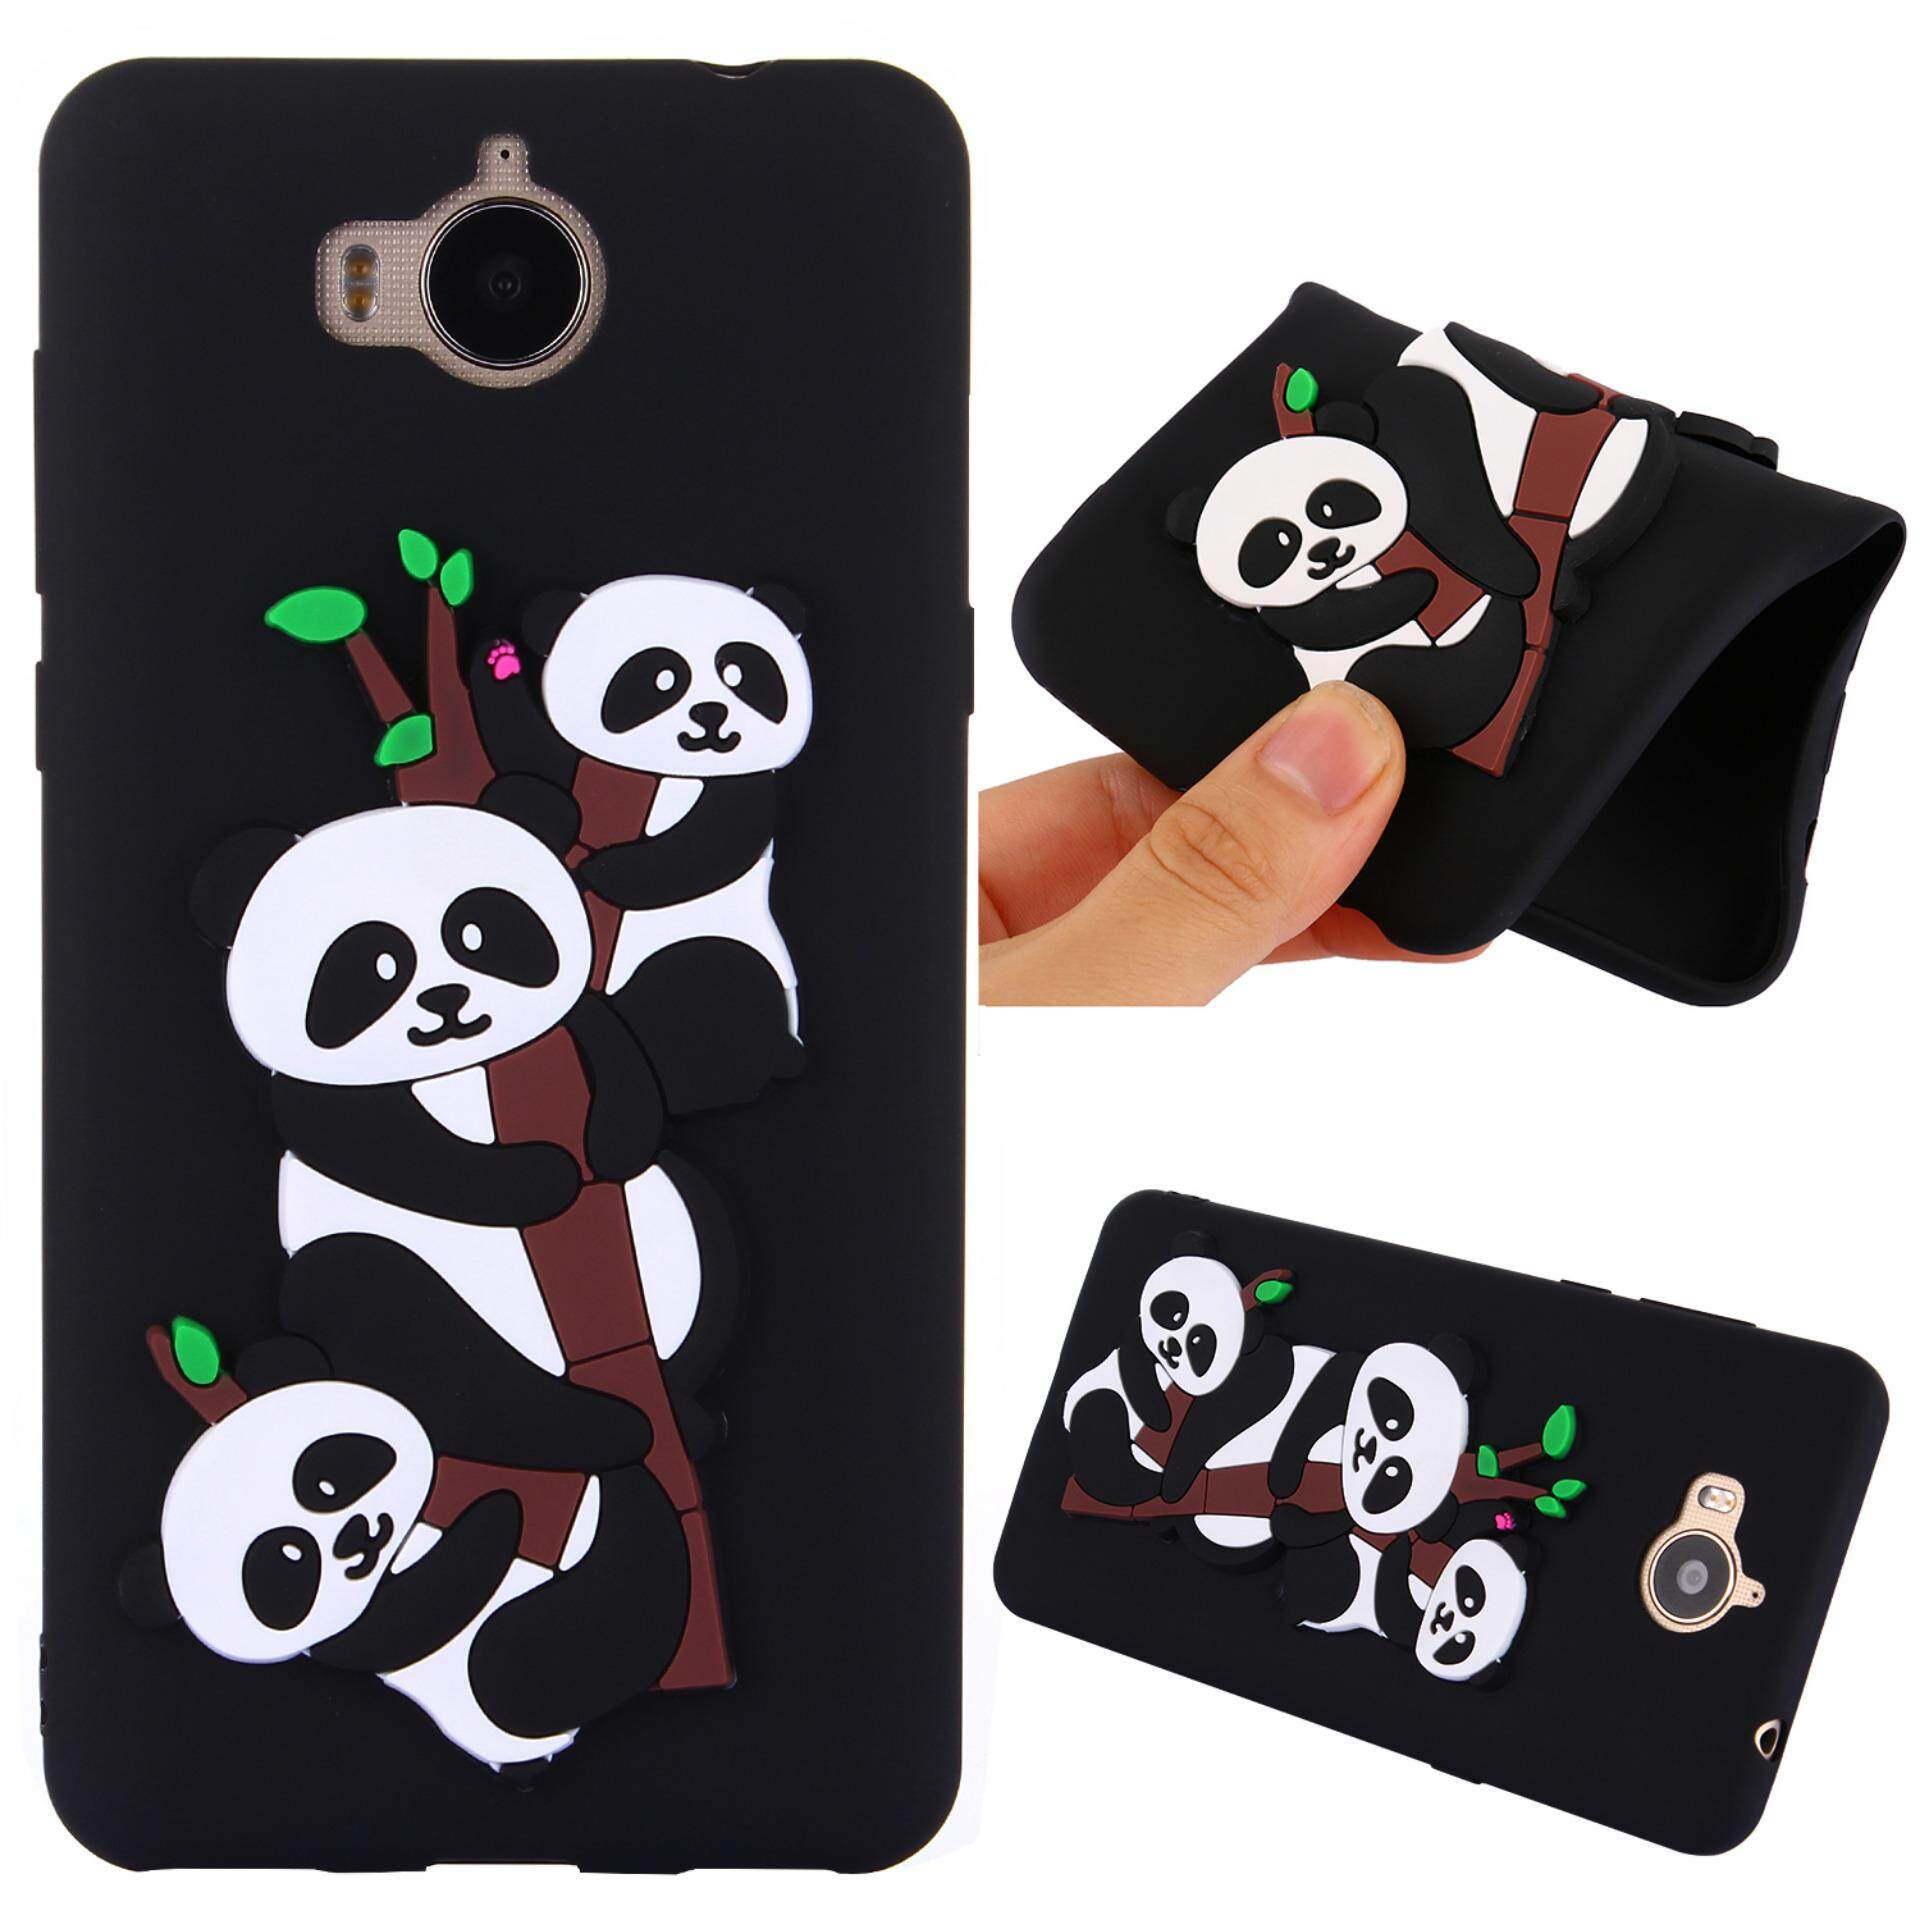 For Huawei Y5 2017 Case 3D Cute Pandas Pattern Rubber Soft TPU Back Cover - intl